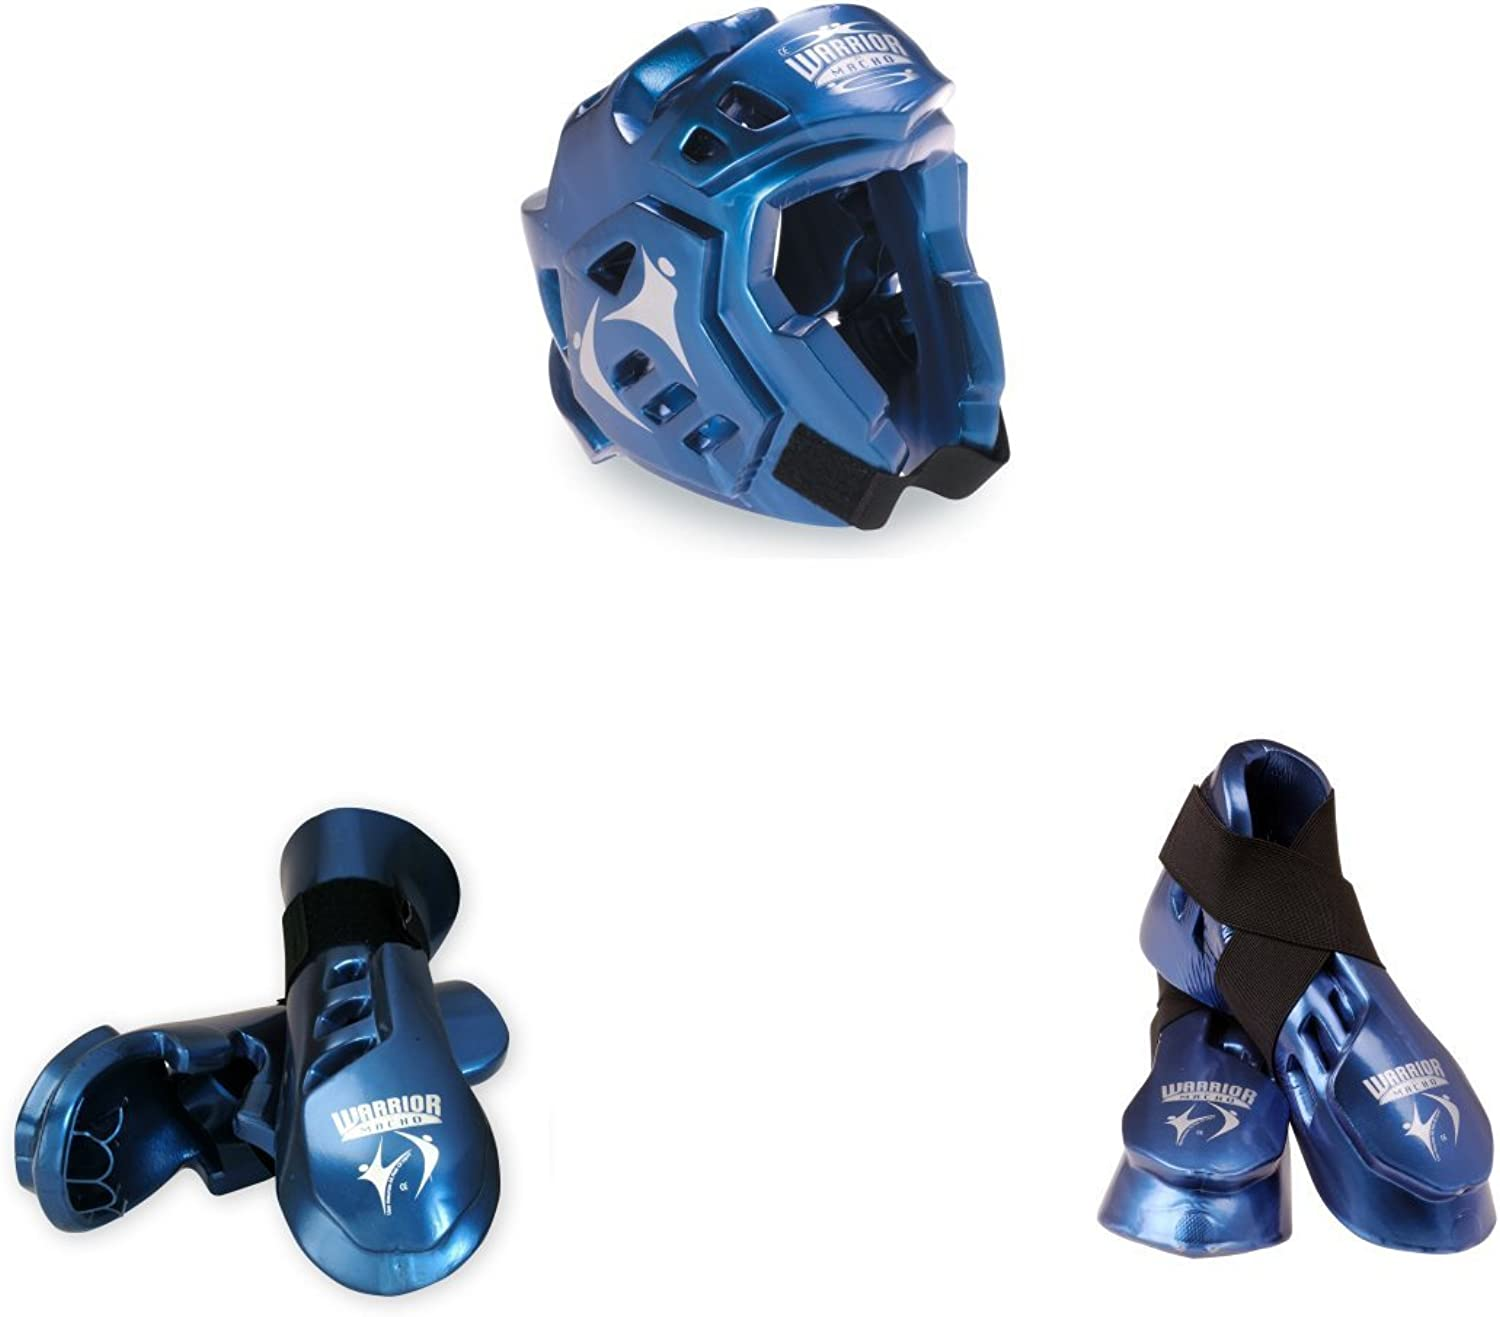 Macho Warrior 5 piece sparring gear set